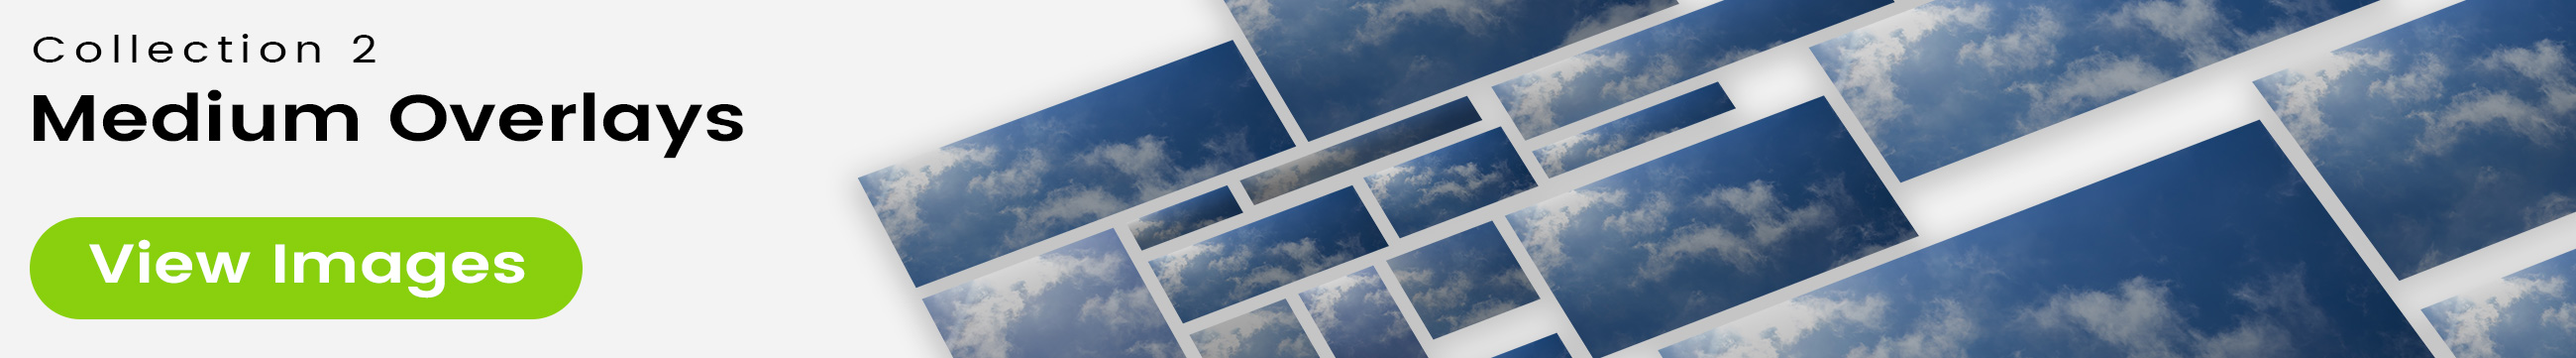 See 25 bonus images included with clouds stock image 9484. Collection 2 of 4 features a medium-dark overlay design.